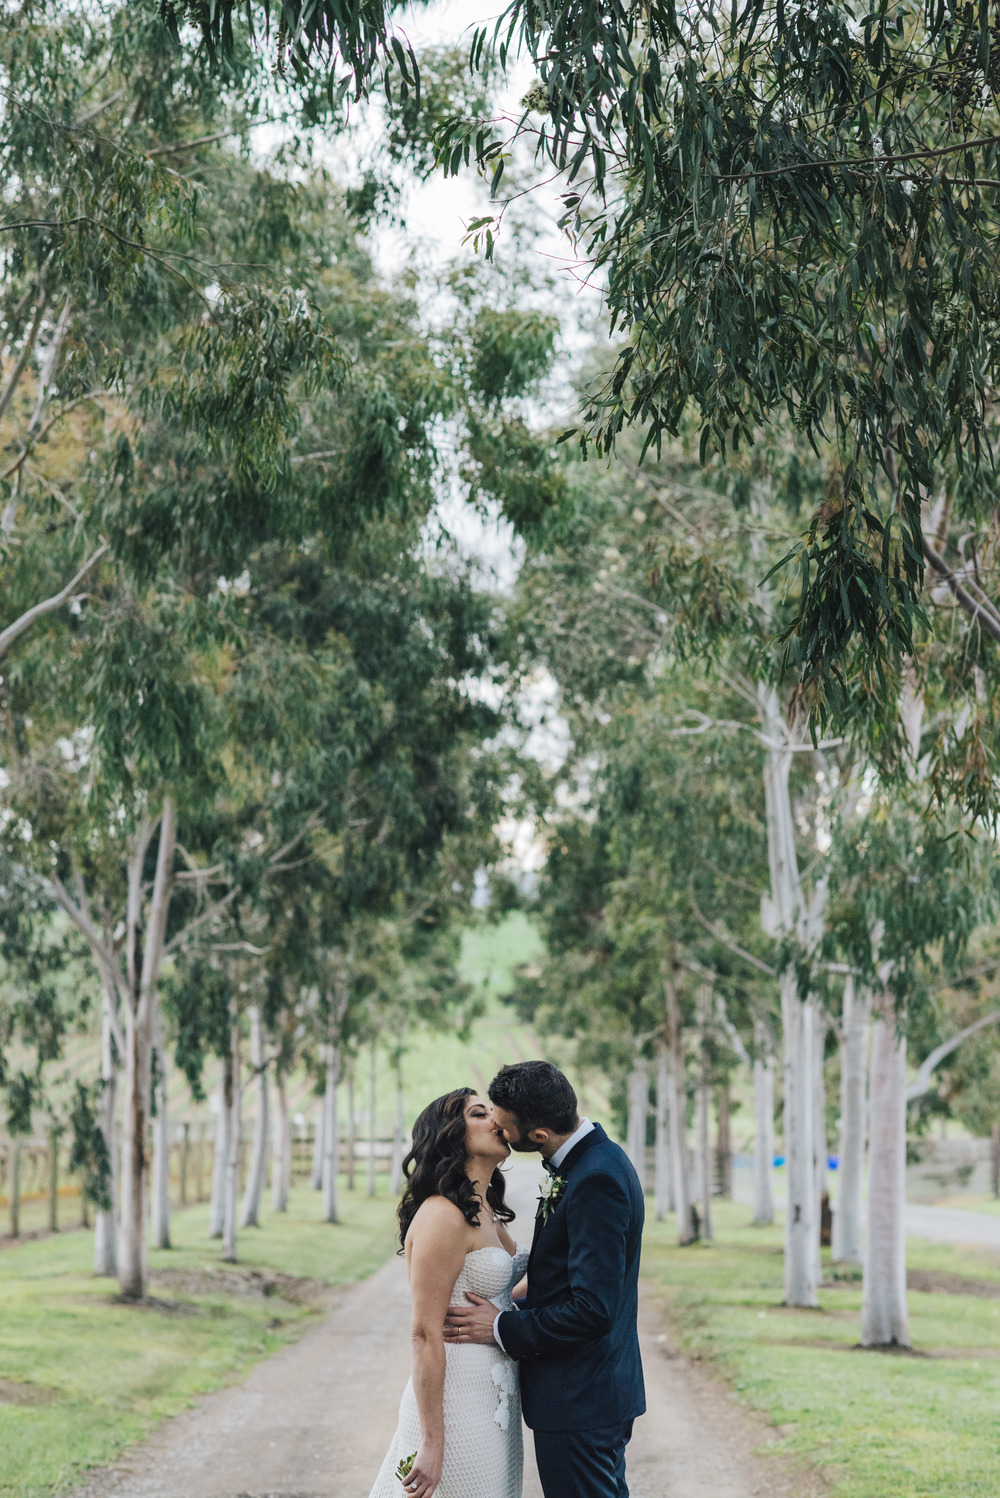 Wedding Hair Yarra Valley : A rustic chic wedding in the yarra valley uk